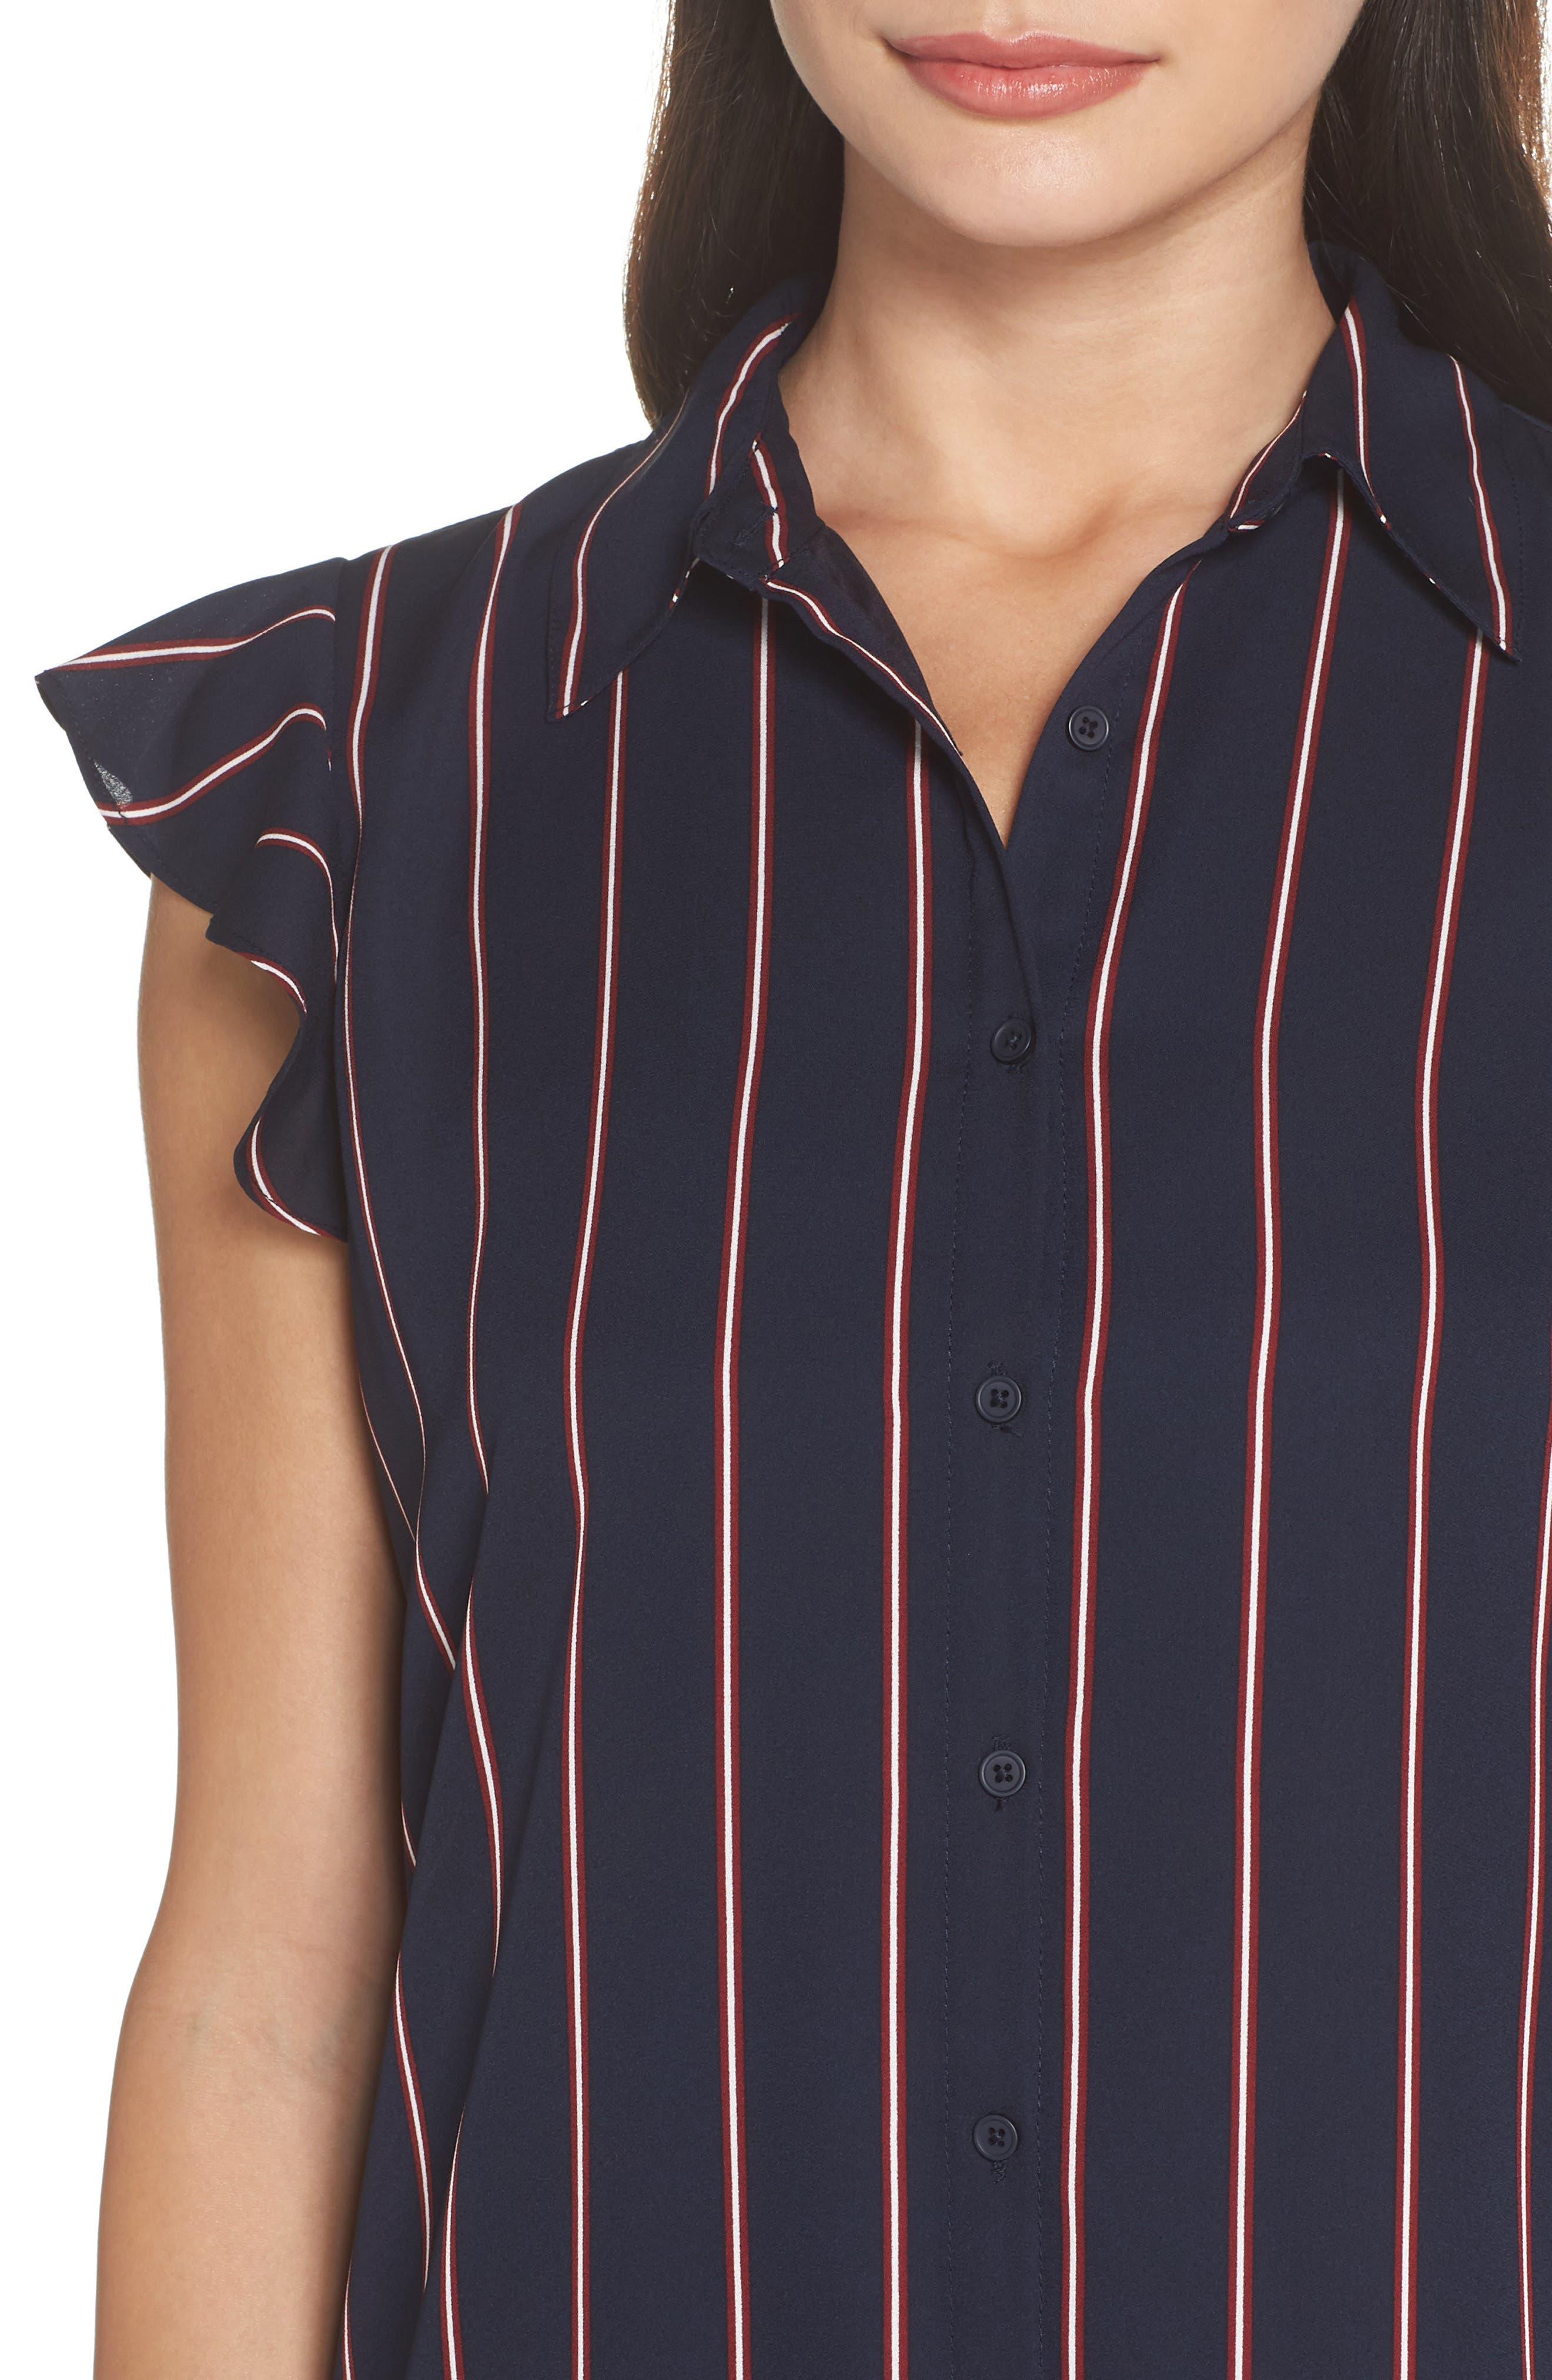 American Pie Stripe Shirtdress,                             Alternate thumbnail 4, color,                             MIDNIGHT SKY